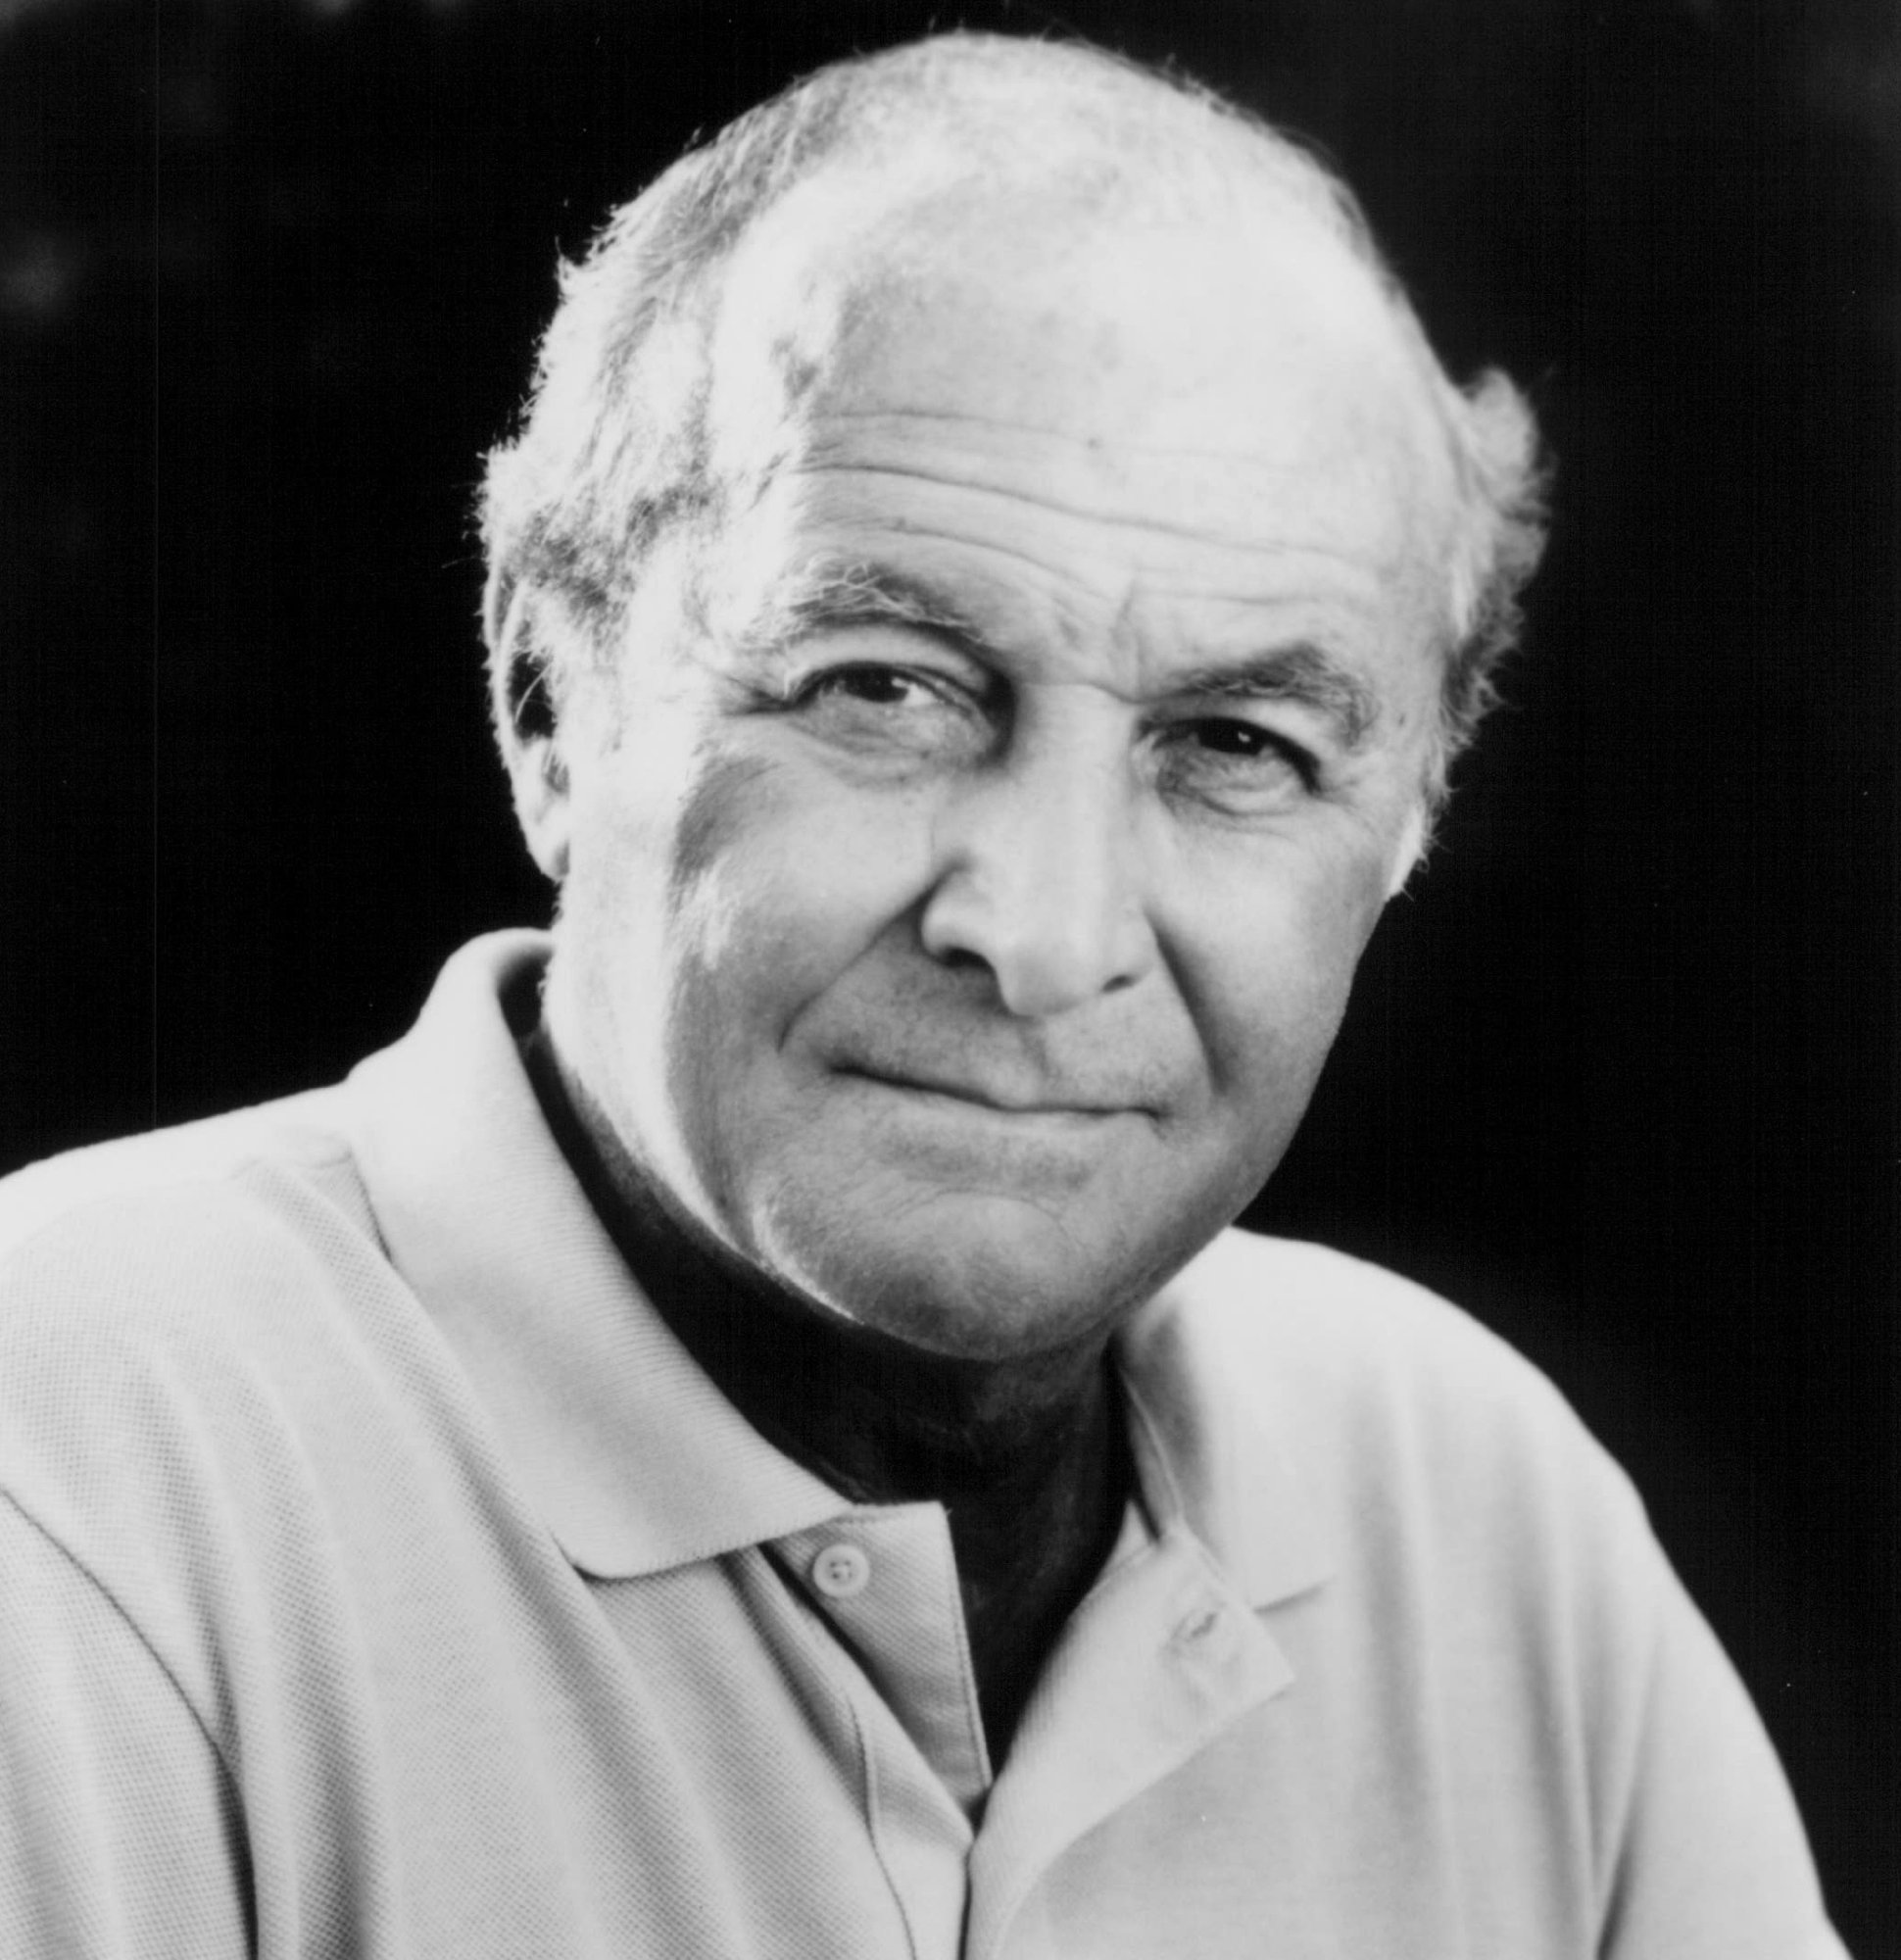 Robert Loggia in 1983